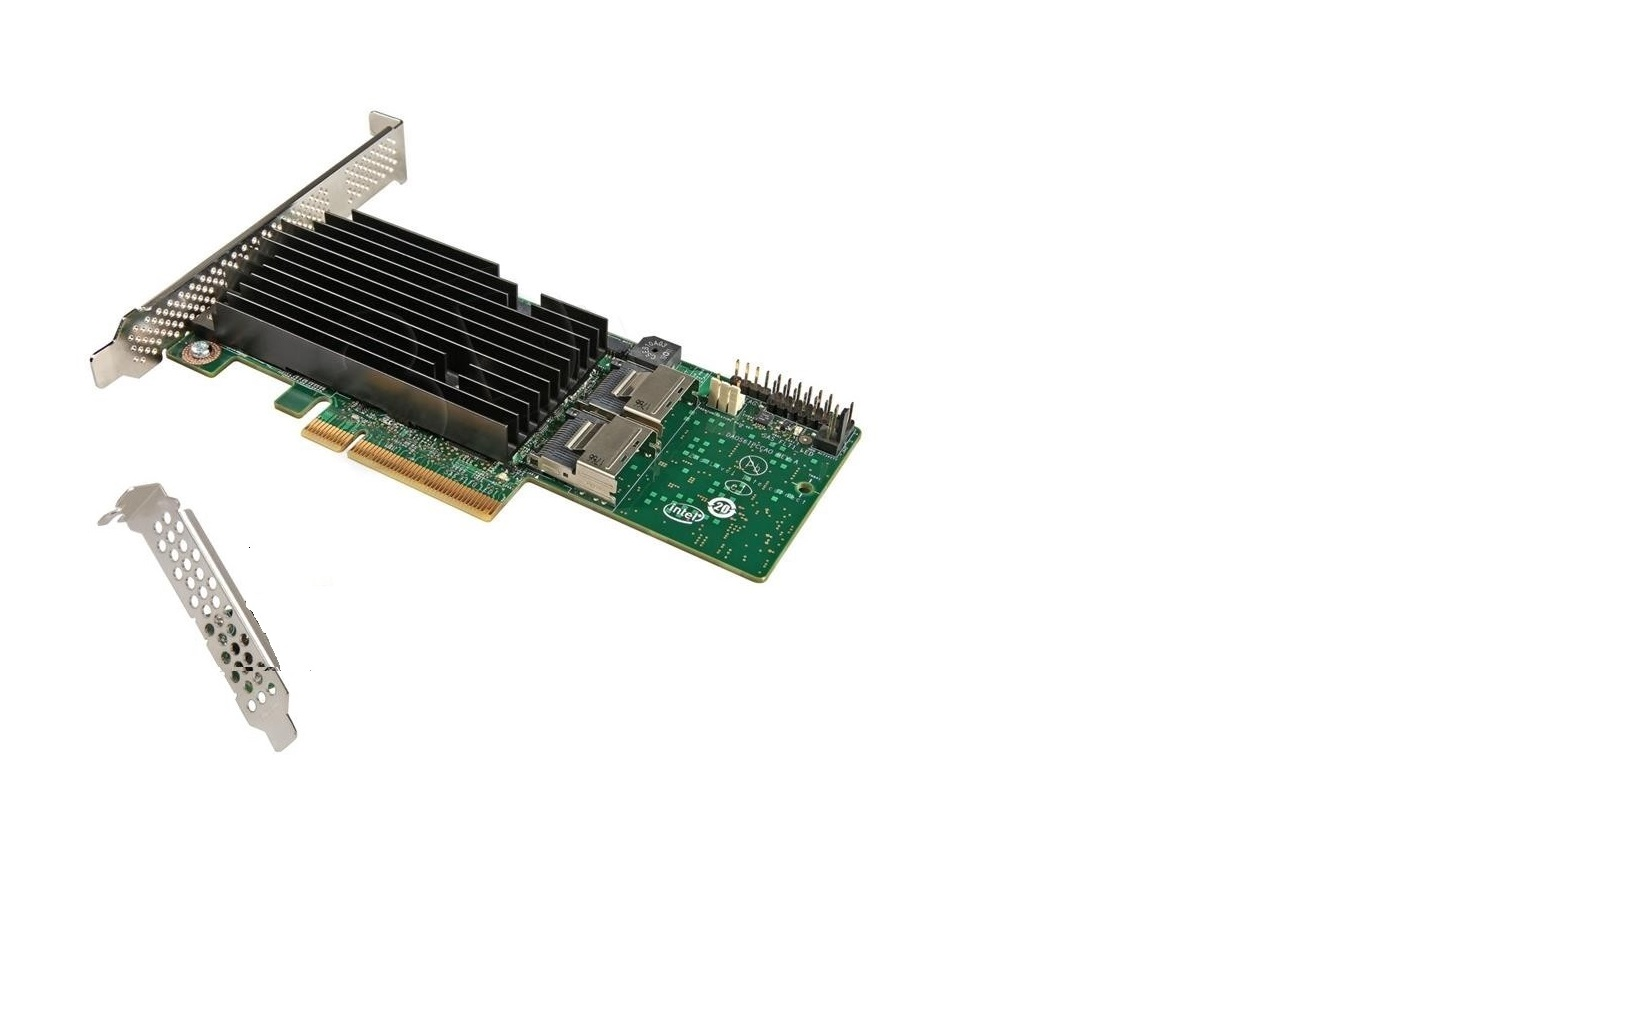 Intel 8-Ports SAS Controller Serial Attached SCSI PCI Express 2.0 x8 Plug-in Card RAID G27504-601